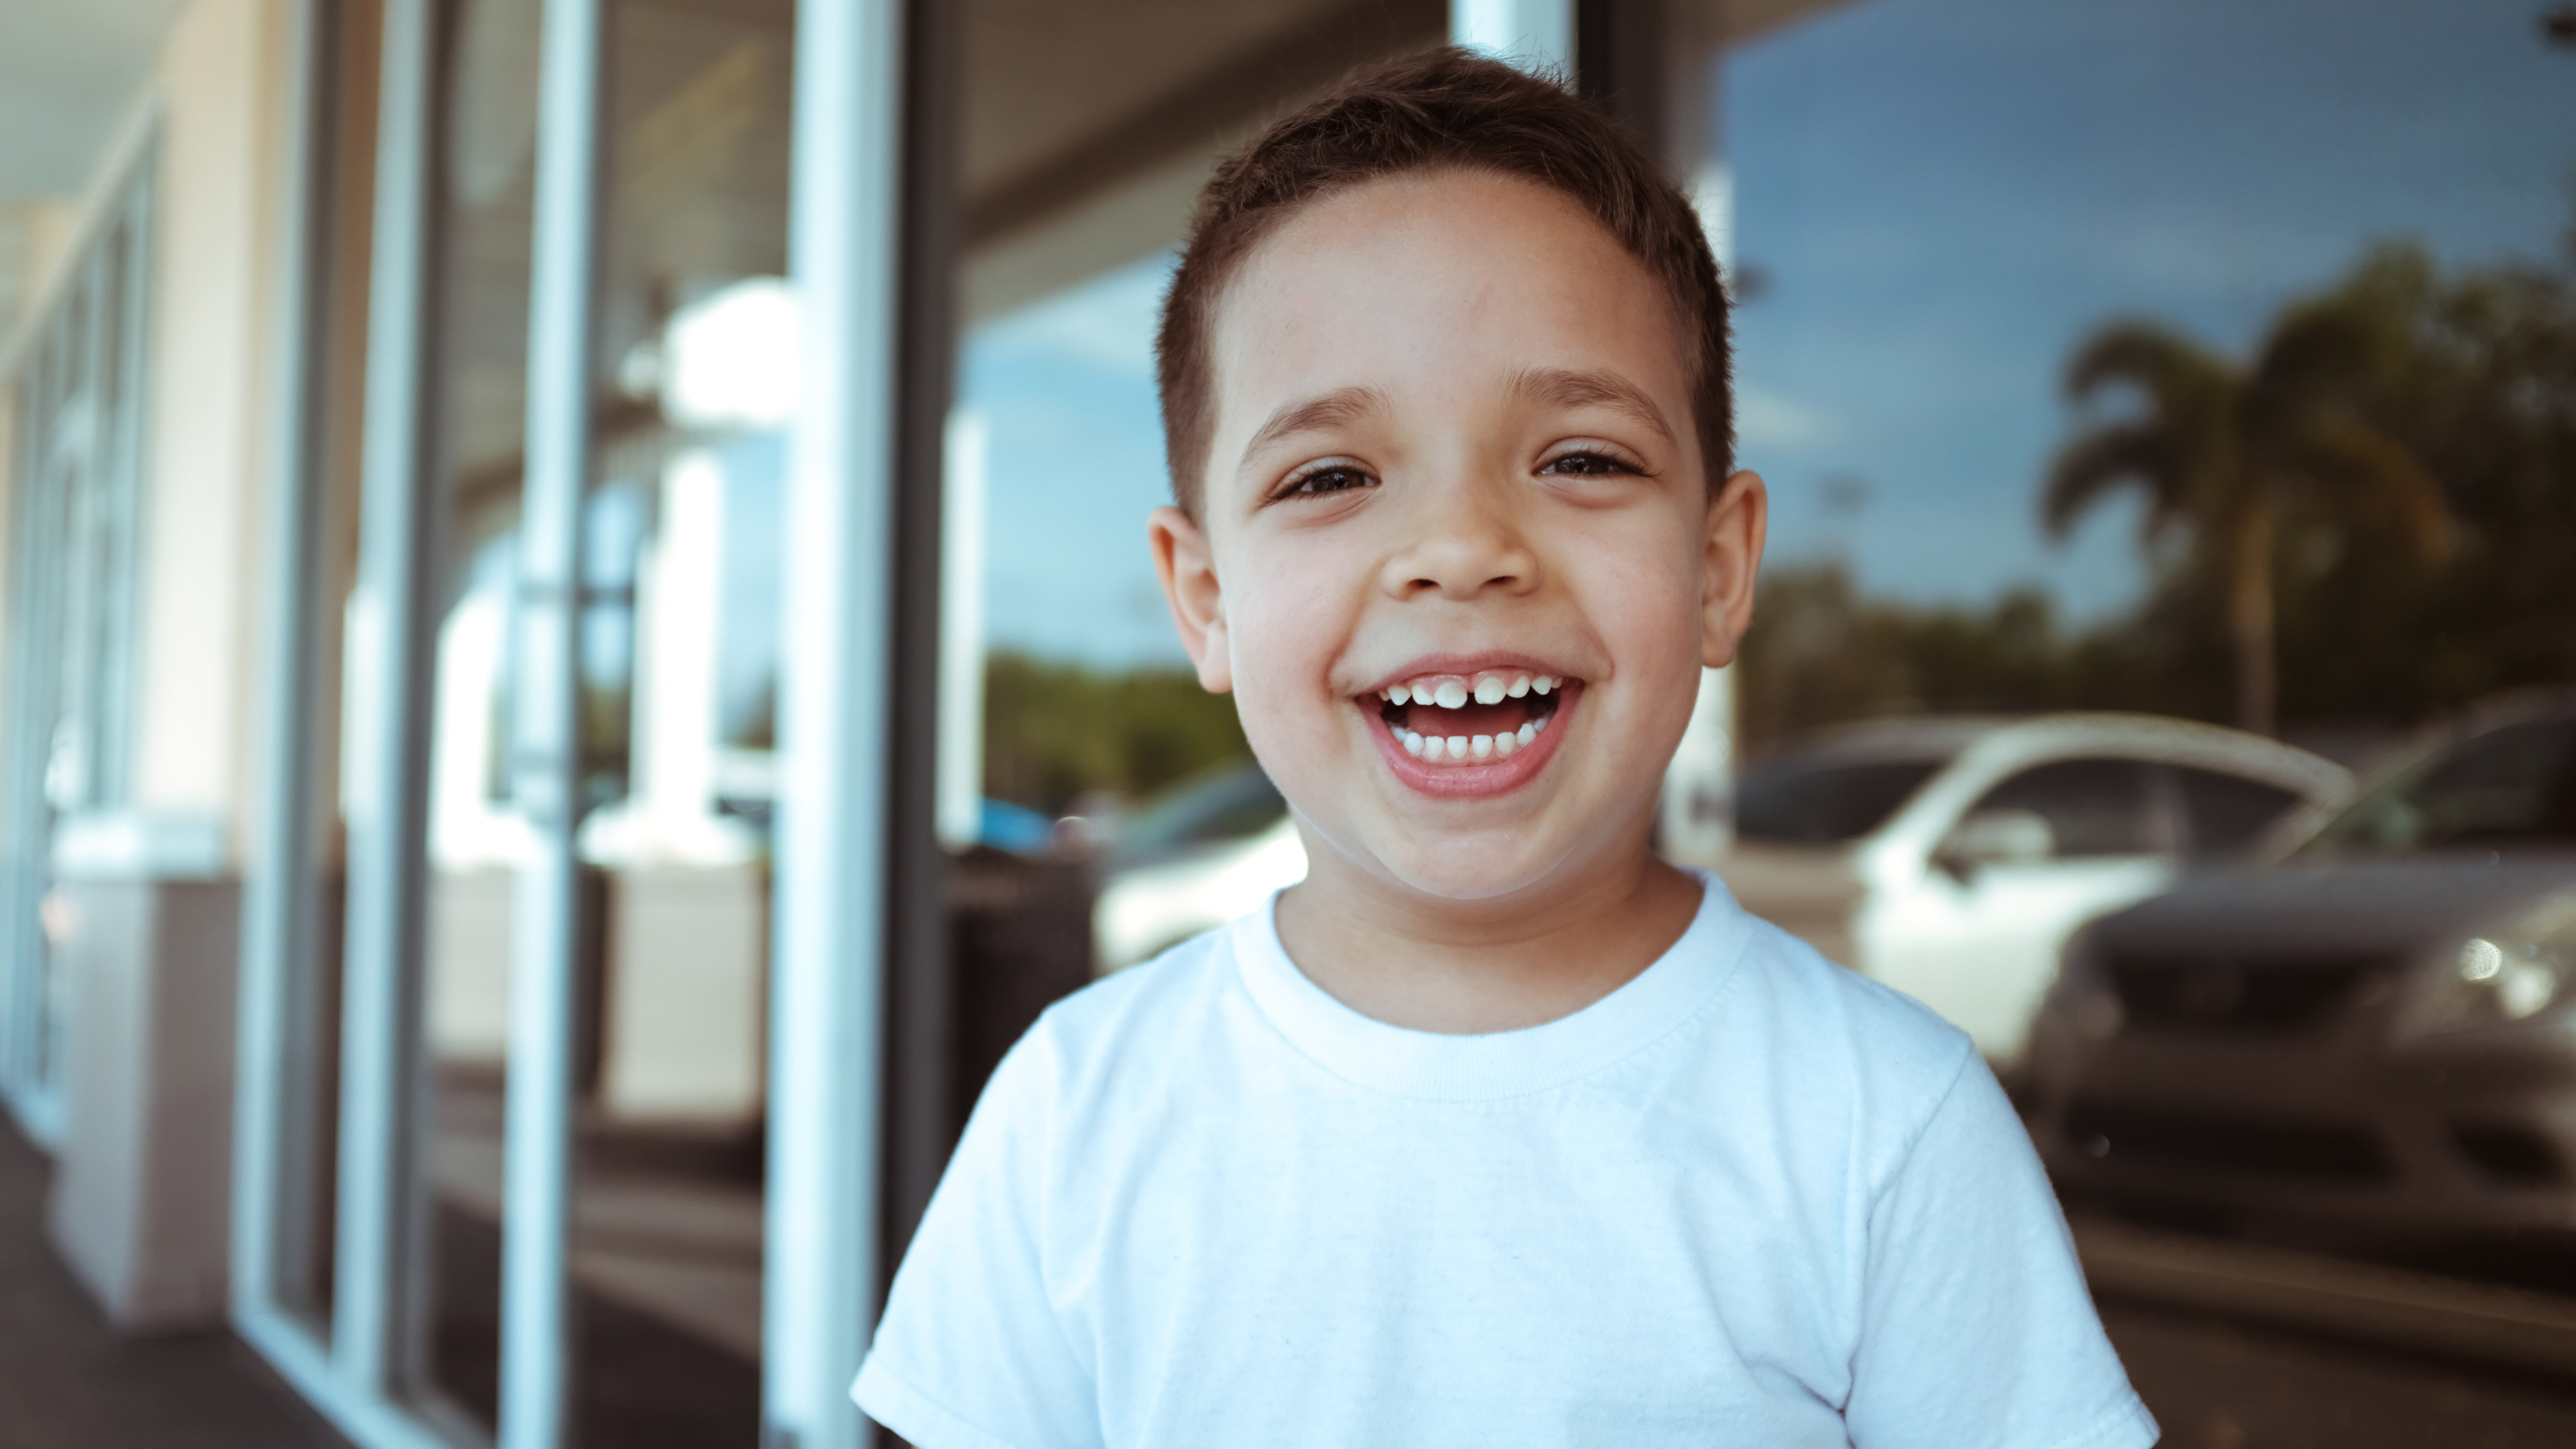 smiling boy wearing white crew-neck t-shirt during daytime